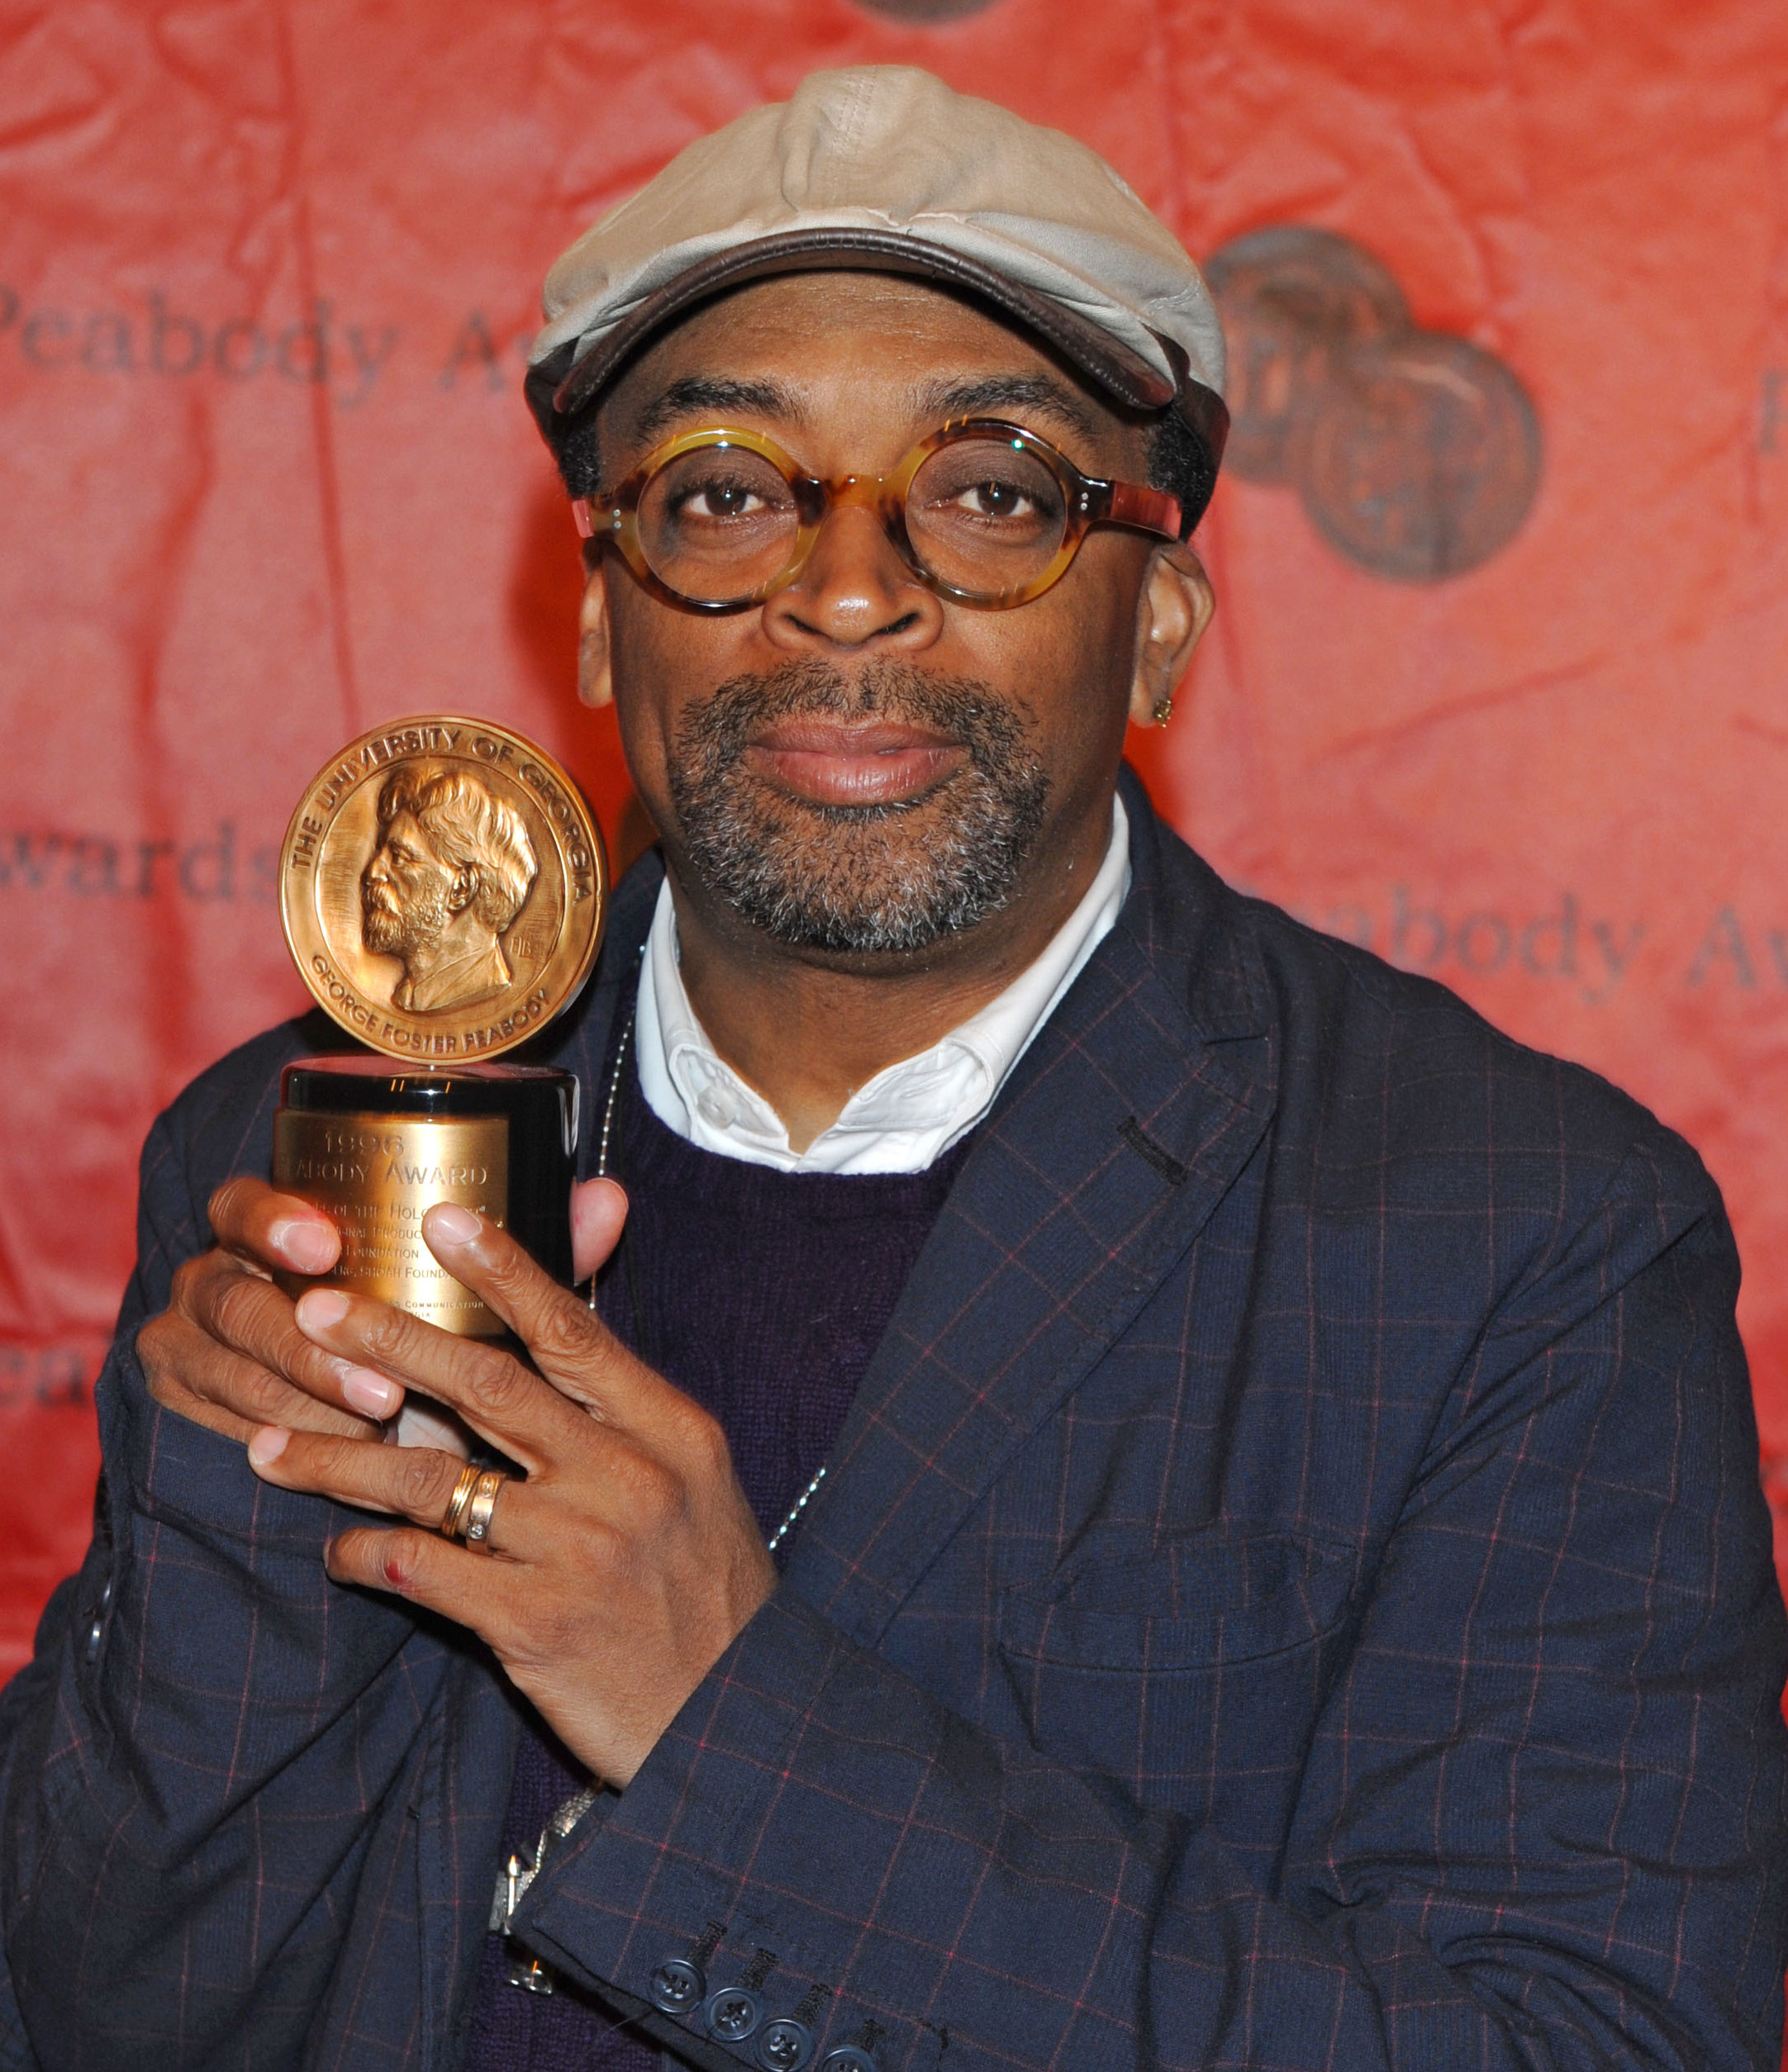 an argument the claim that spike lee iss racist 25 years after do the right thing, spike lee explains why racism stil yes, j paul getty had as many live-in girlfriends as fx's trust claims vanity fair.